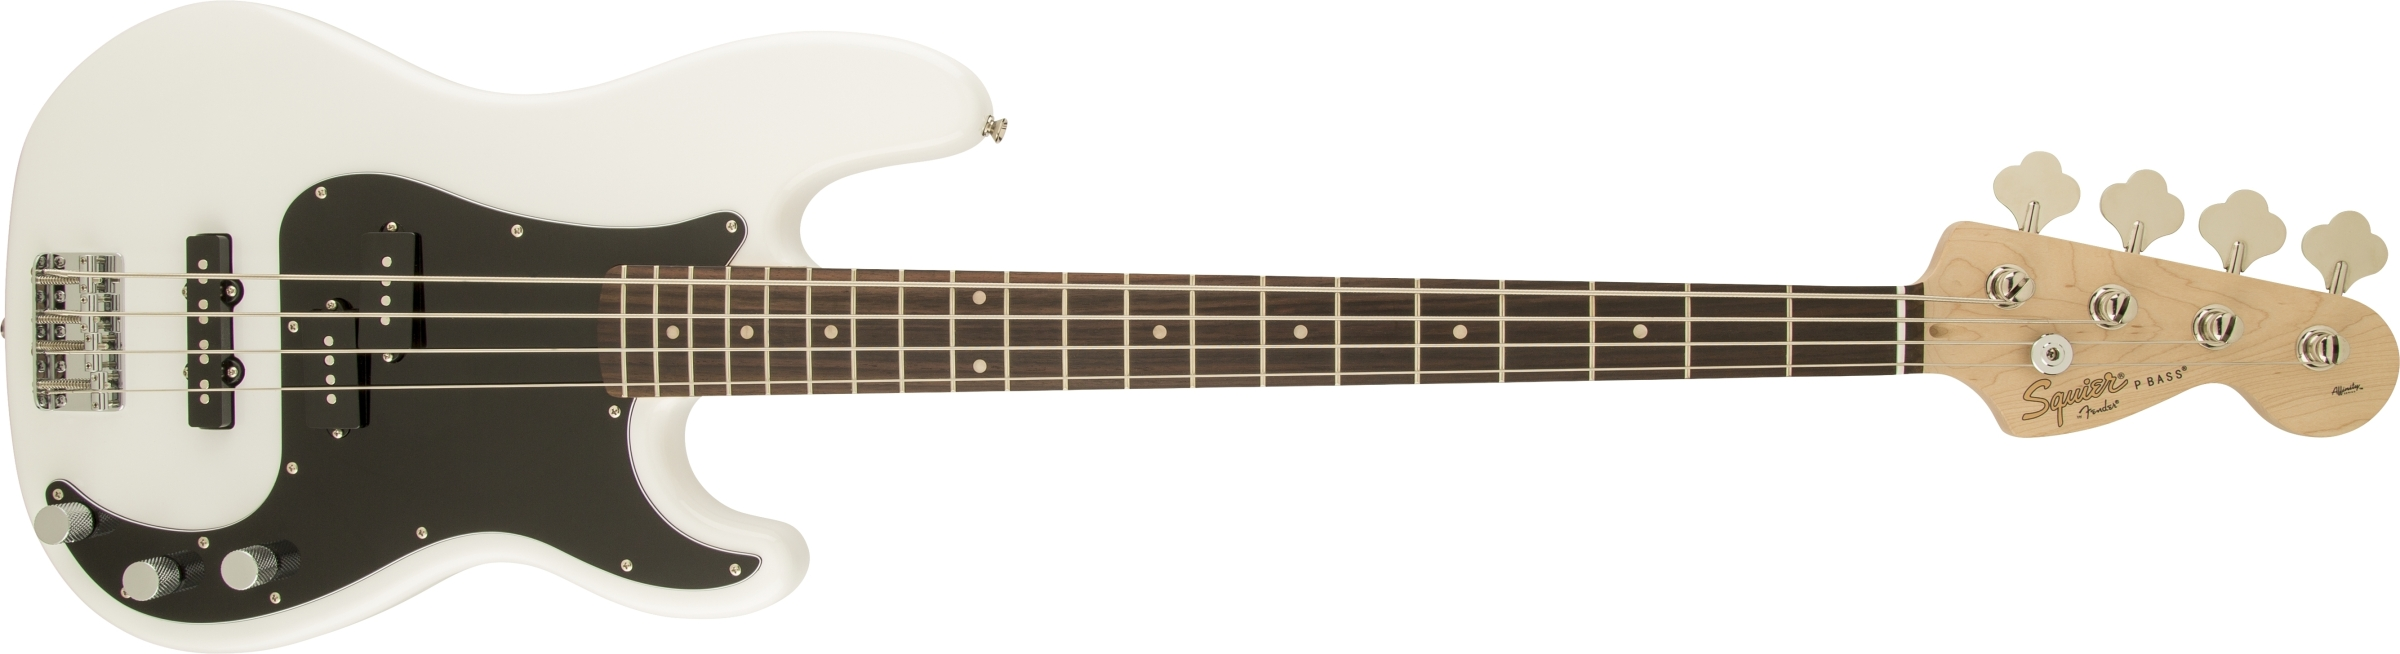 affinity series precision bass pj squier electric basses. Black Bedroom Furniture Sets. Home Design Ideas